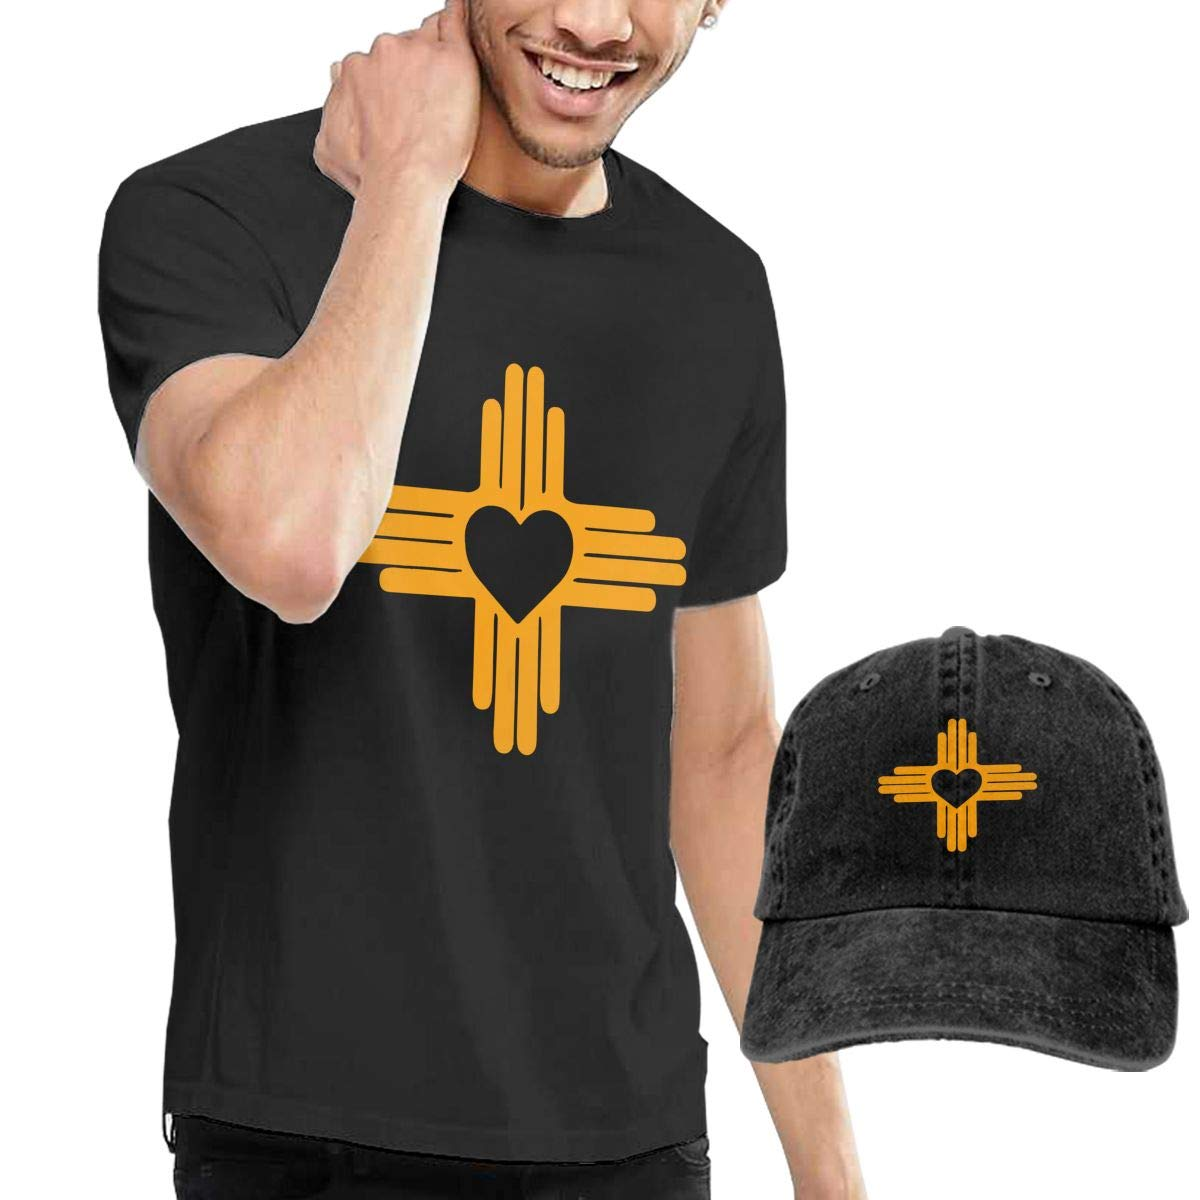 New Mexico State Flag Adult Mens Summertime T Shirt and Fishing Jean Hat WWTBBJ-B Zia with Heart Symbol